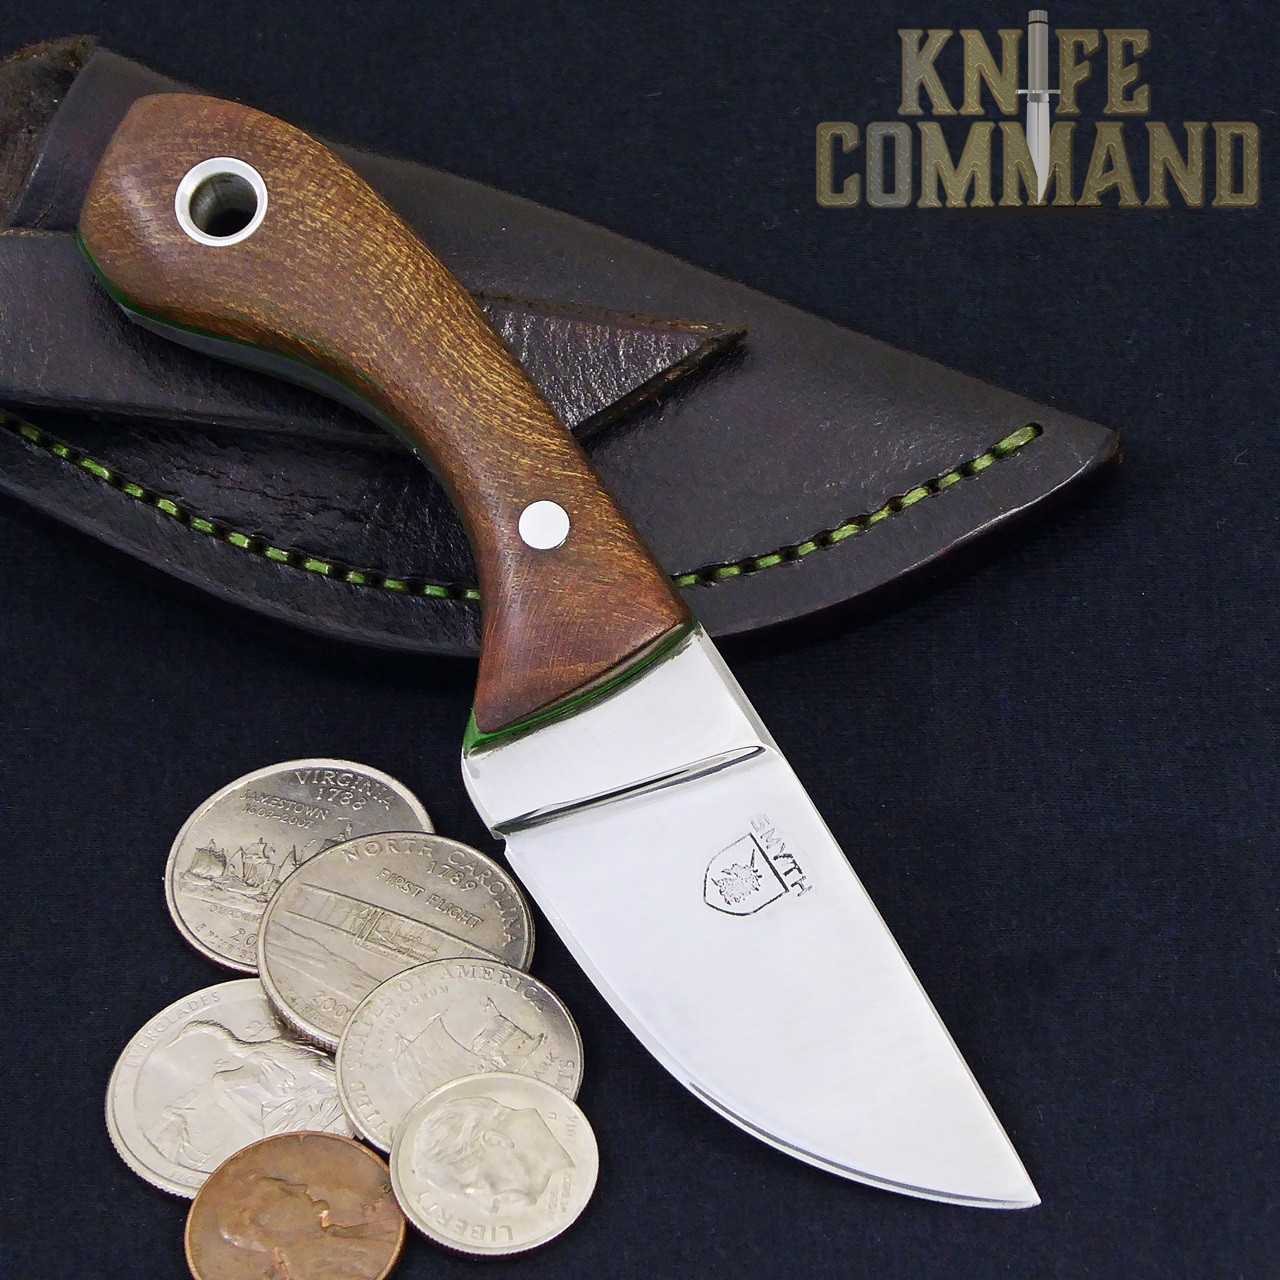 Paddy Smyth Knives Irish Elm Knife, The Leprechaun.  Coins shown for size perspective.